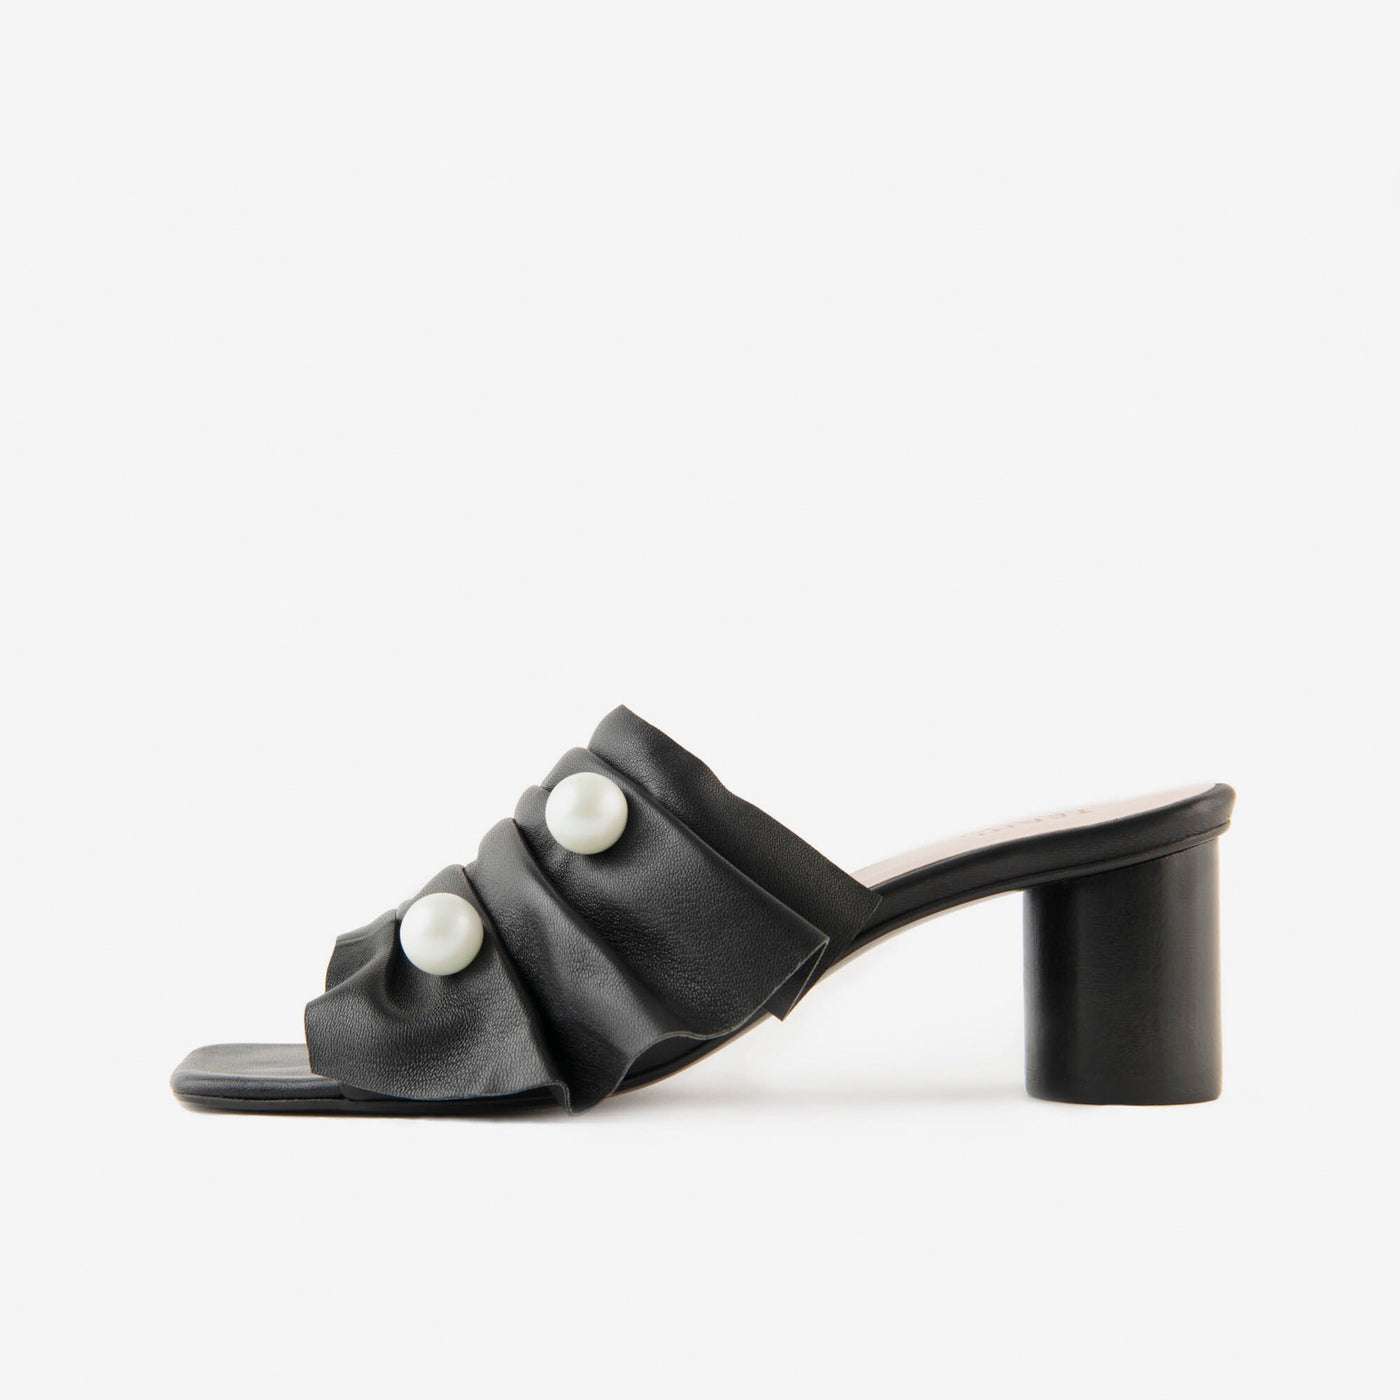 PEPE SQUARE MULE BLACK